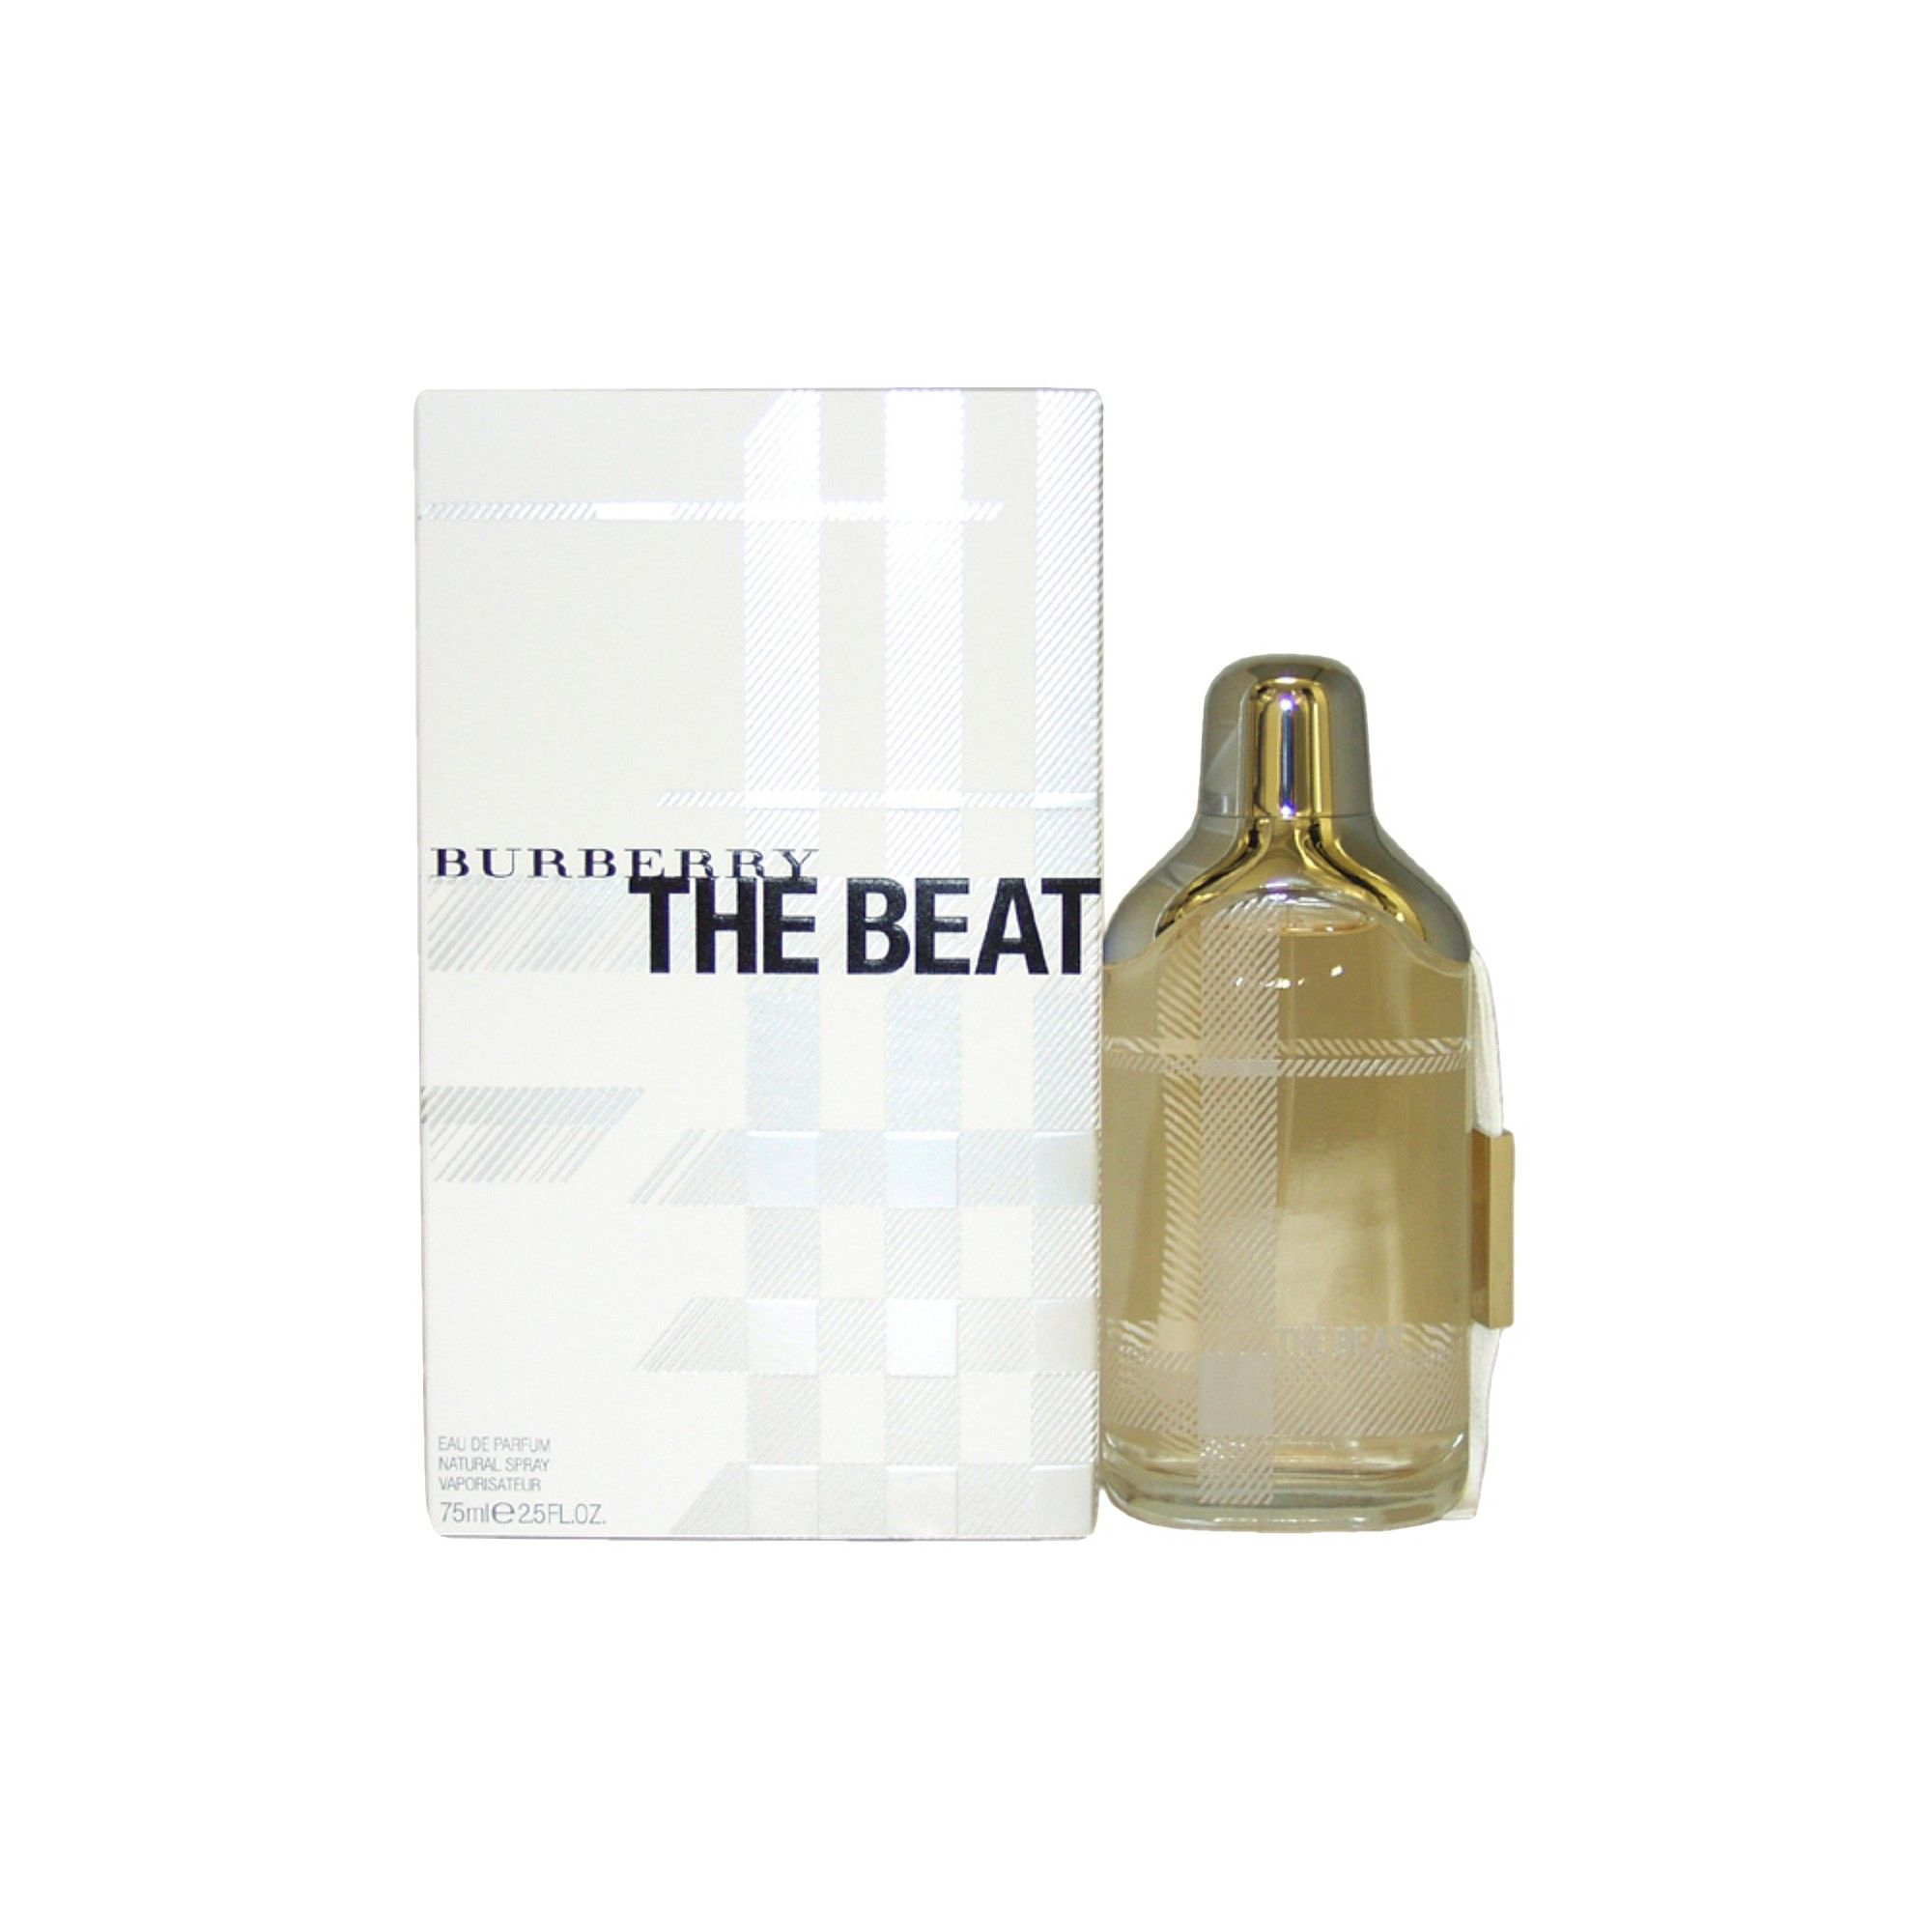 The Beat Burberry: Aroma Description and Customer Reviews 81